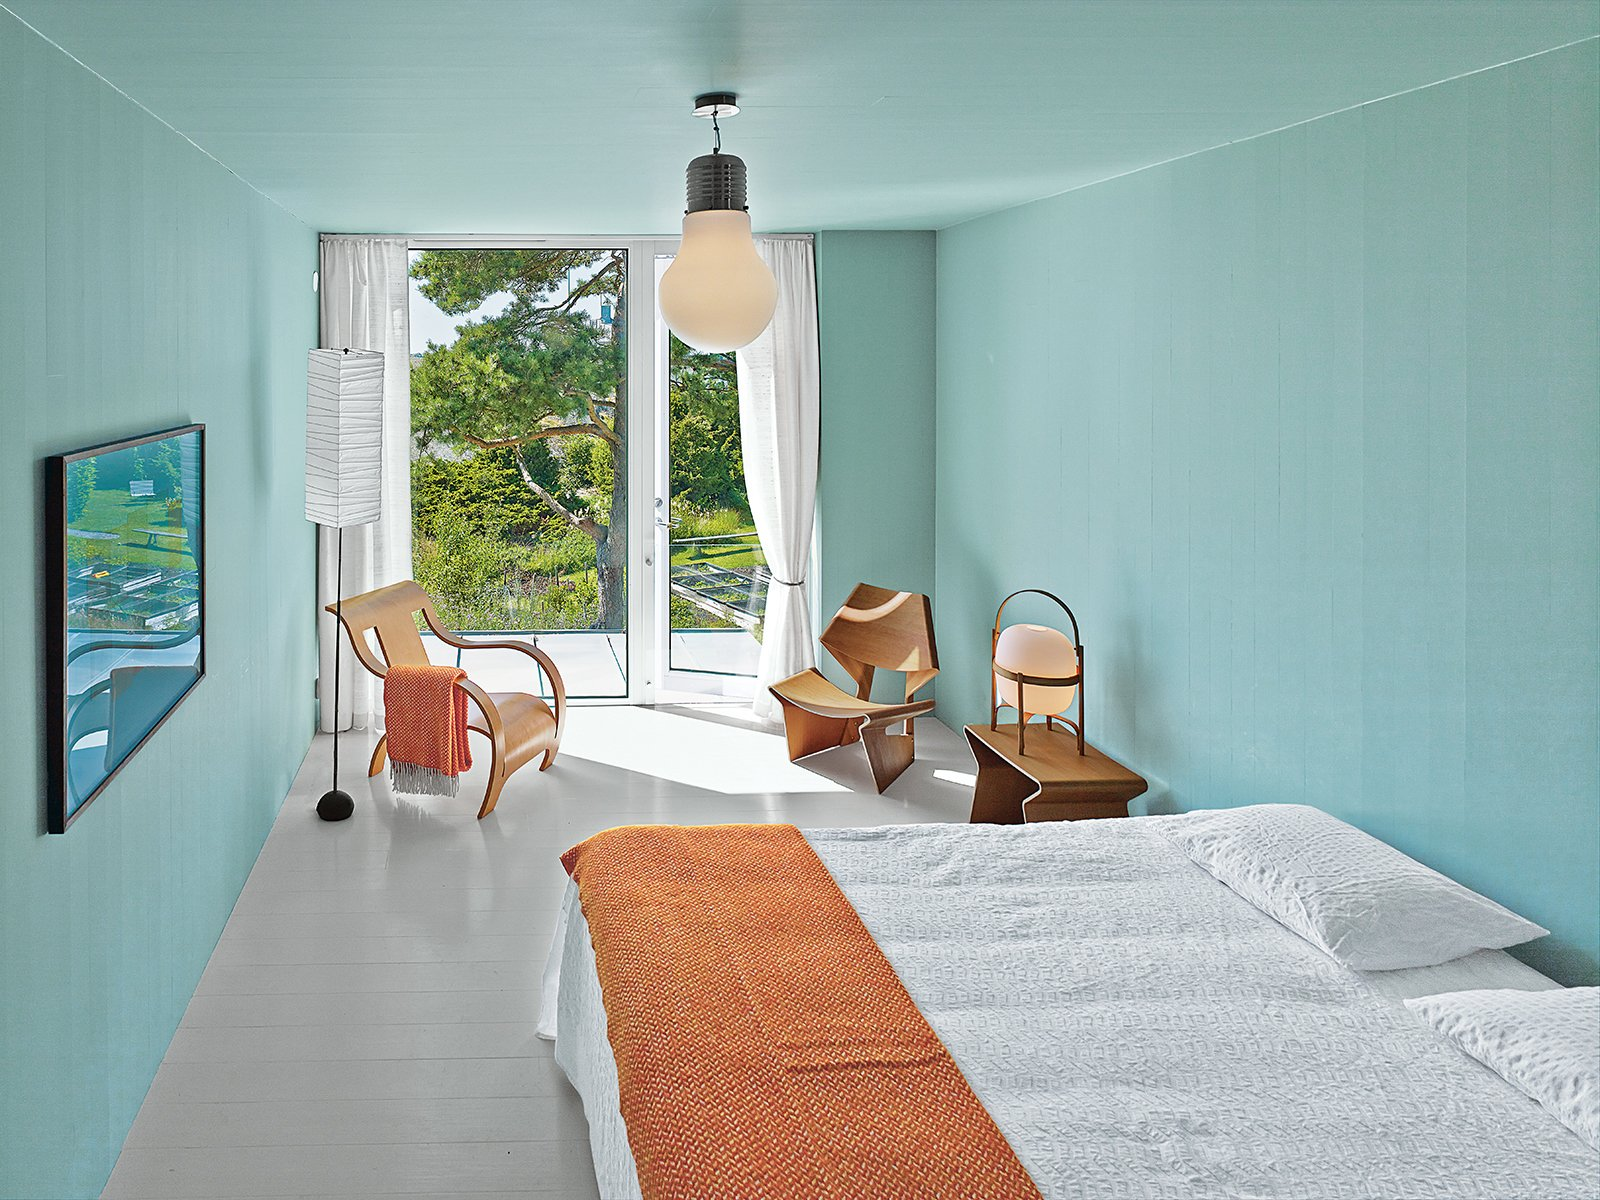 Bedroom, Night Stands, Chair, Bed, Lamps, Ceiling Lighting, and Painted Wood Floor The master bedroom, which is painted a soothing green-gray, features a chair and nesting tables in Oregon pine designed by Grete Jalk in the 1960s, and a standing lamp by Isamu Noguchi. The armchair is by Gerald Summers. The couple found the overhead fixture at an auction.  Photo 5 of 8 in A Pine Box Vacation Home in Sweden